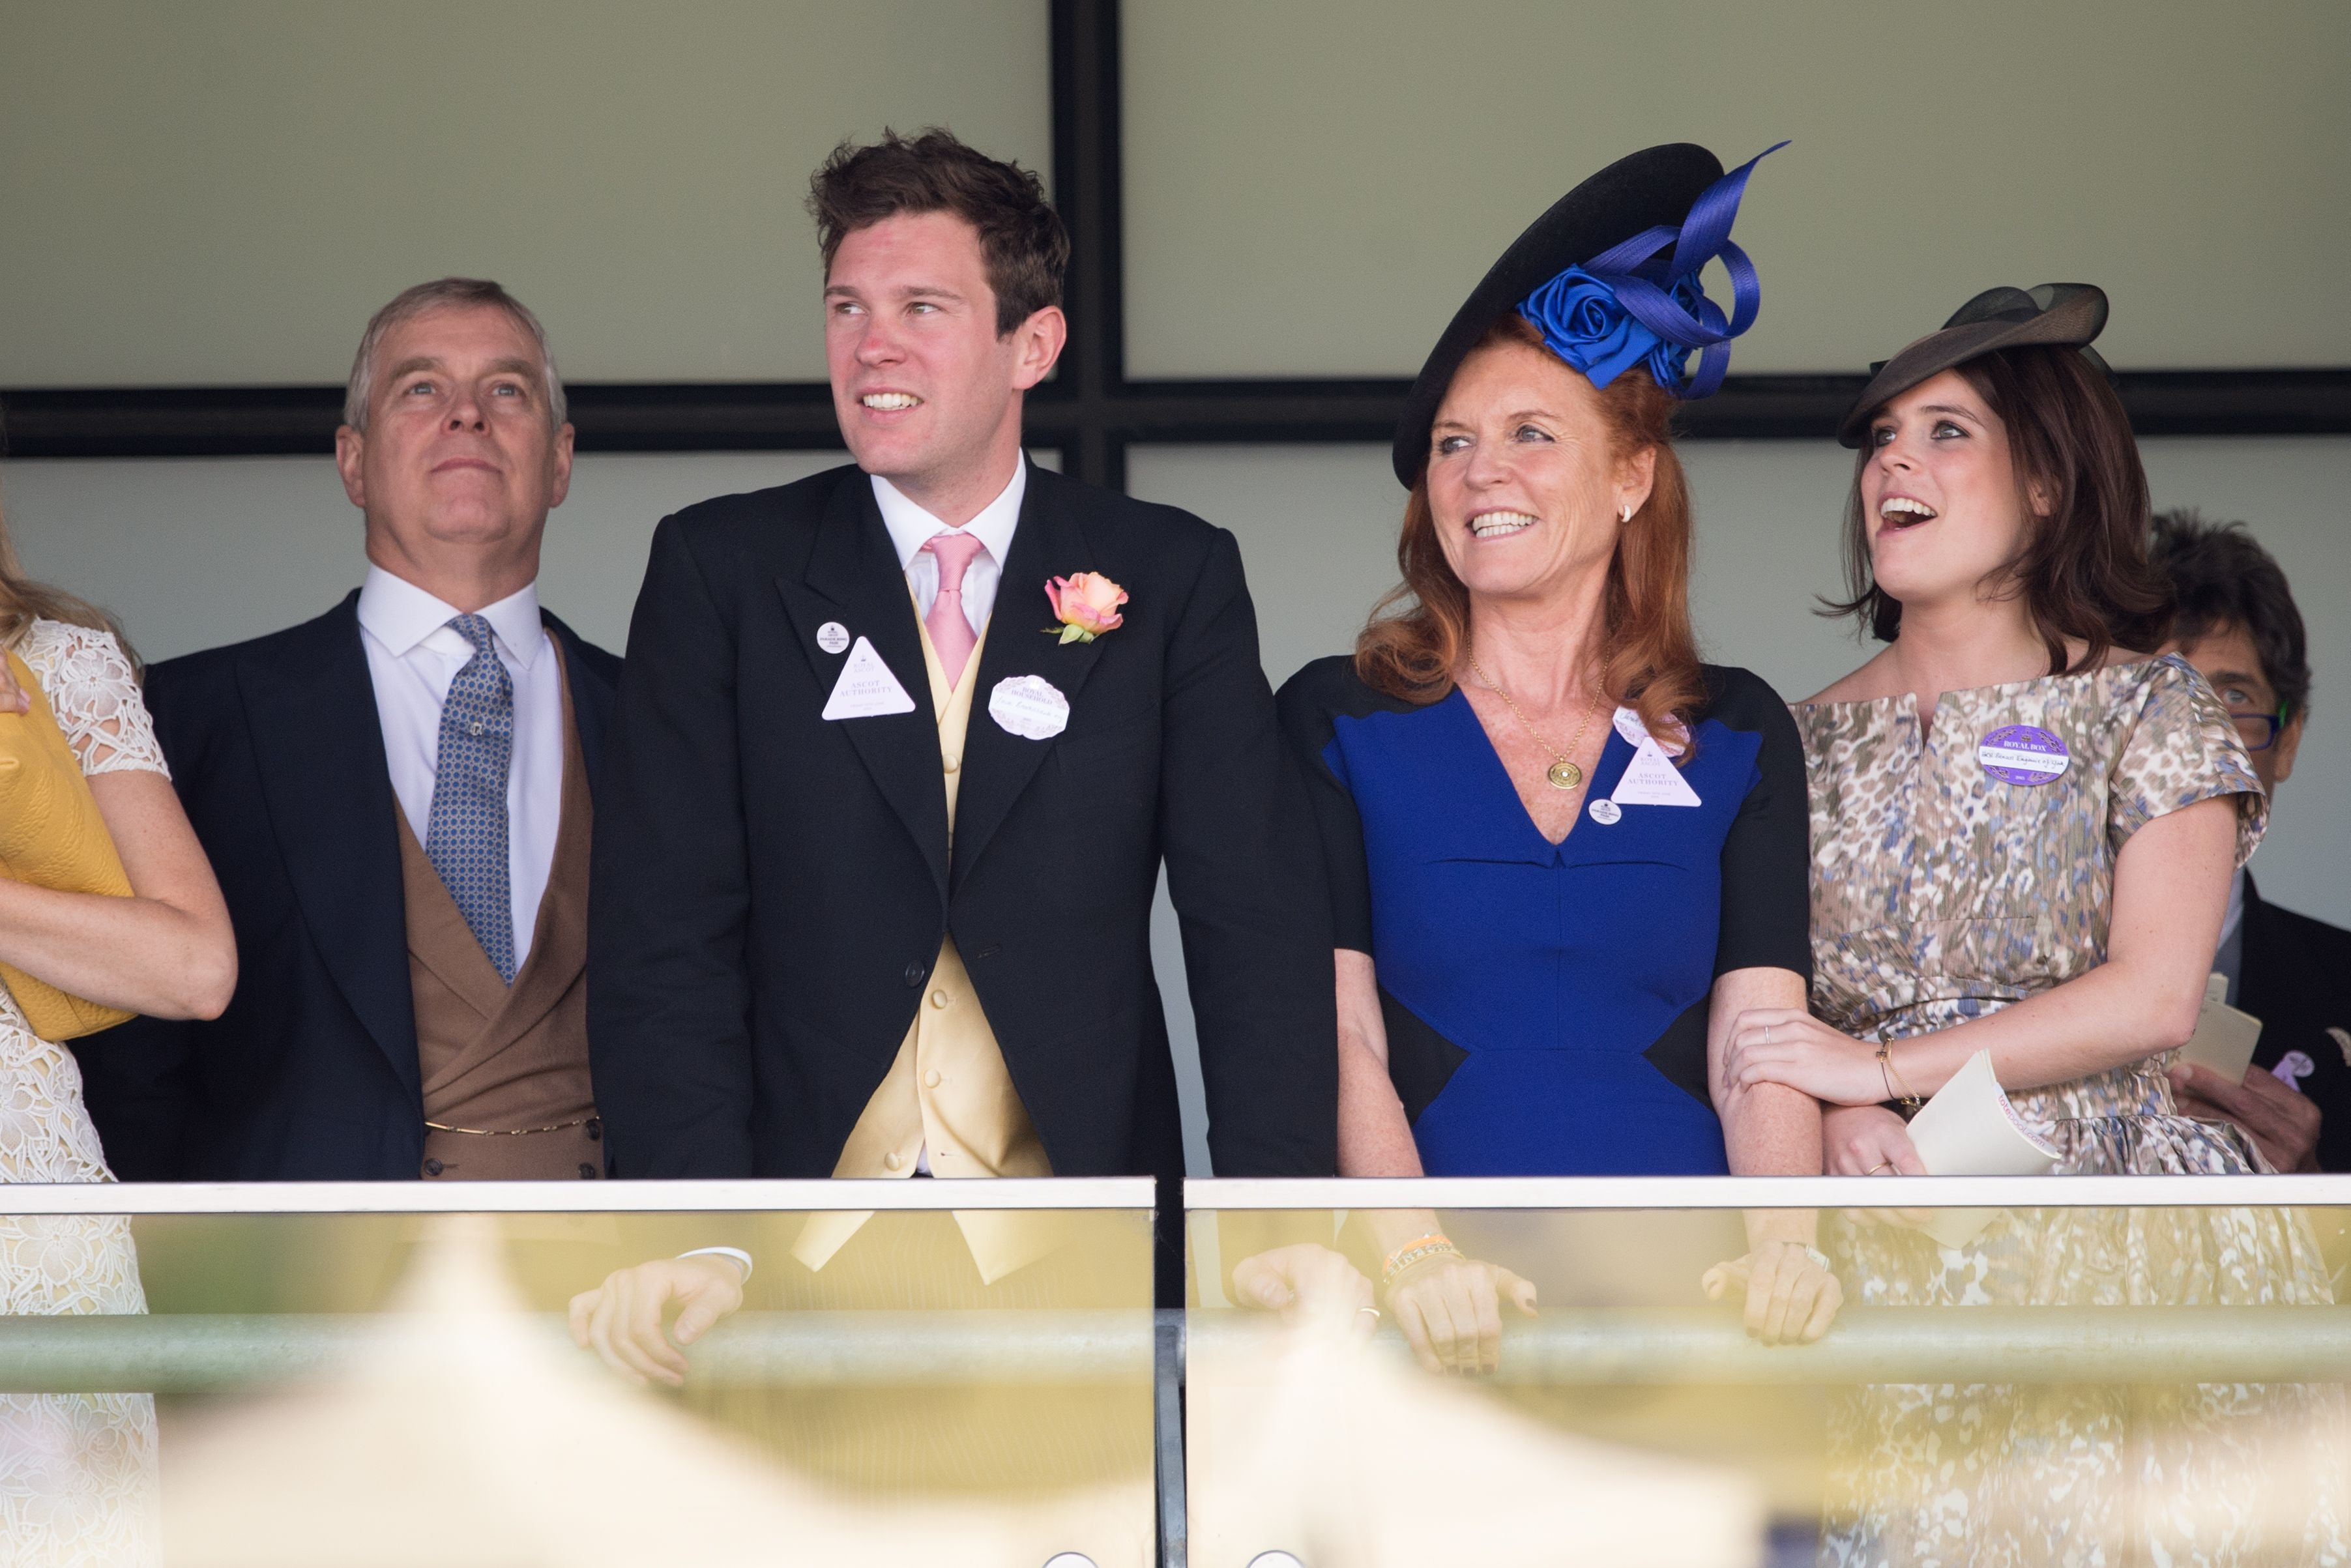 Watch So proud': Duchess of York shares heartfelt message to Prince Andrew video